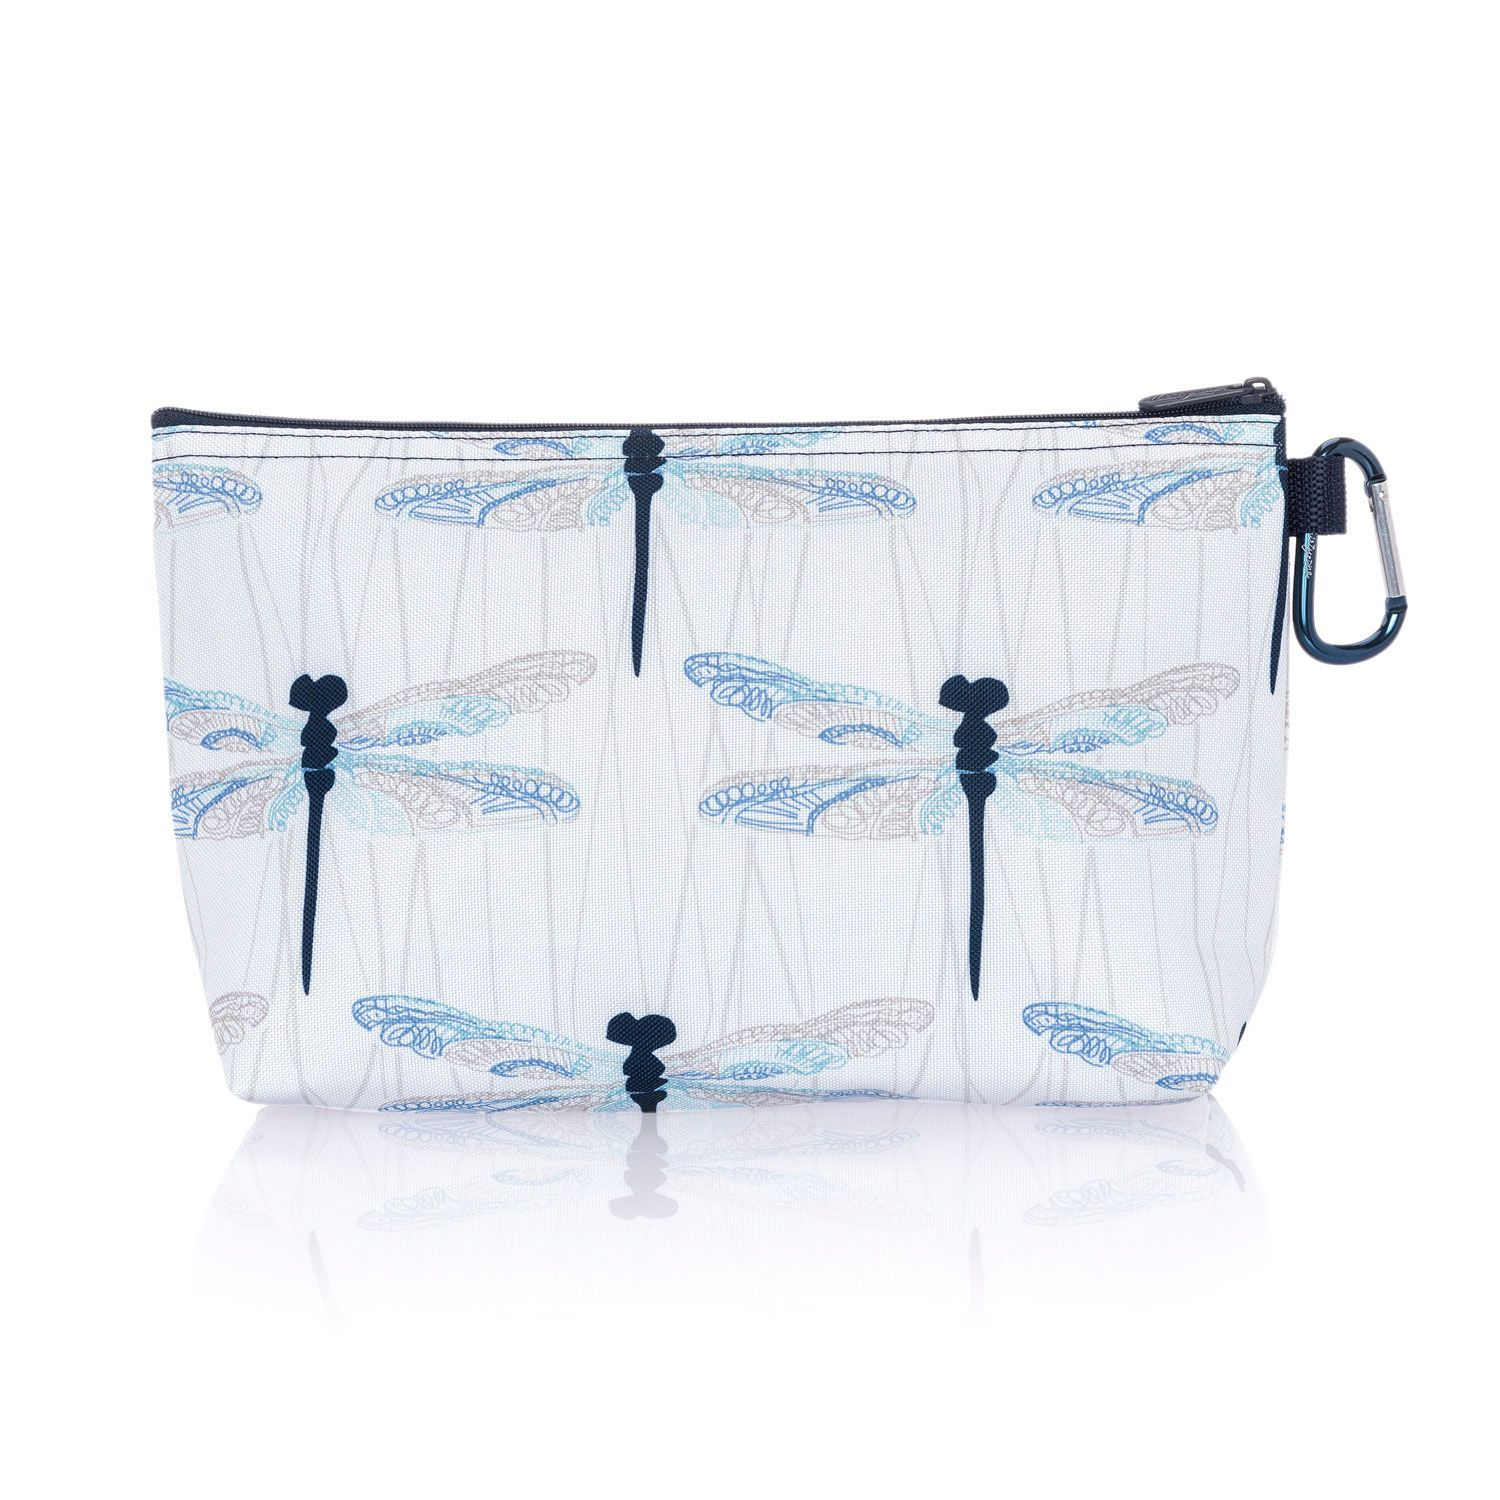 Cool Clip Thermal Pouch Patio Pop In 2018 Thirty One Pinterest Babygo Inc Travelling Organiser Dragonfly Daze Gifts Bags